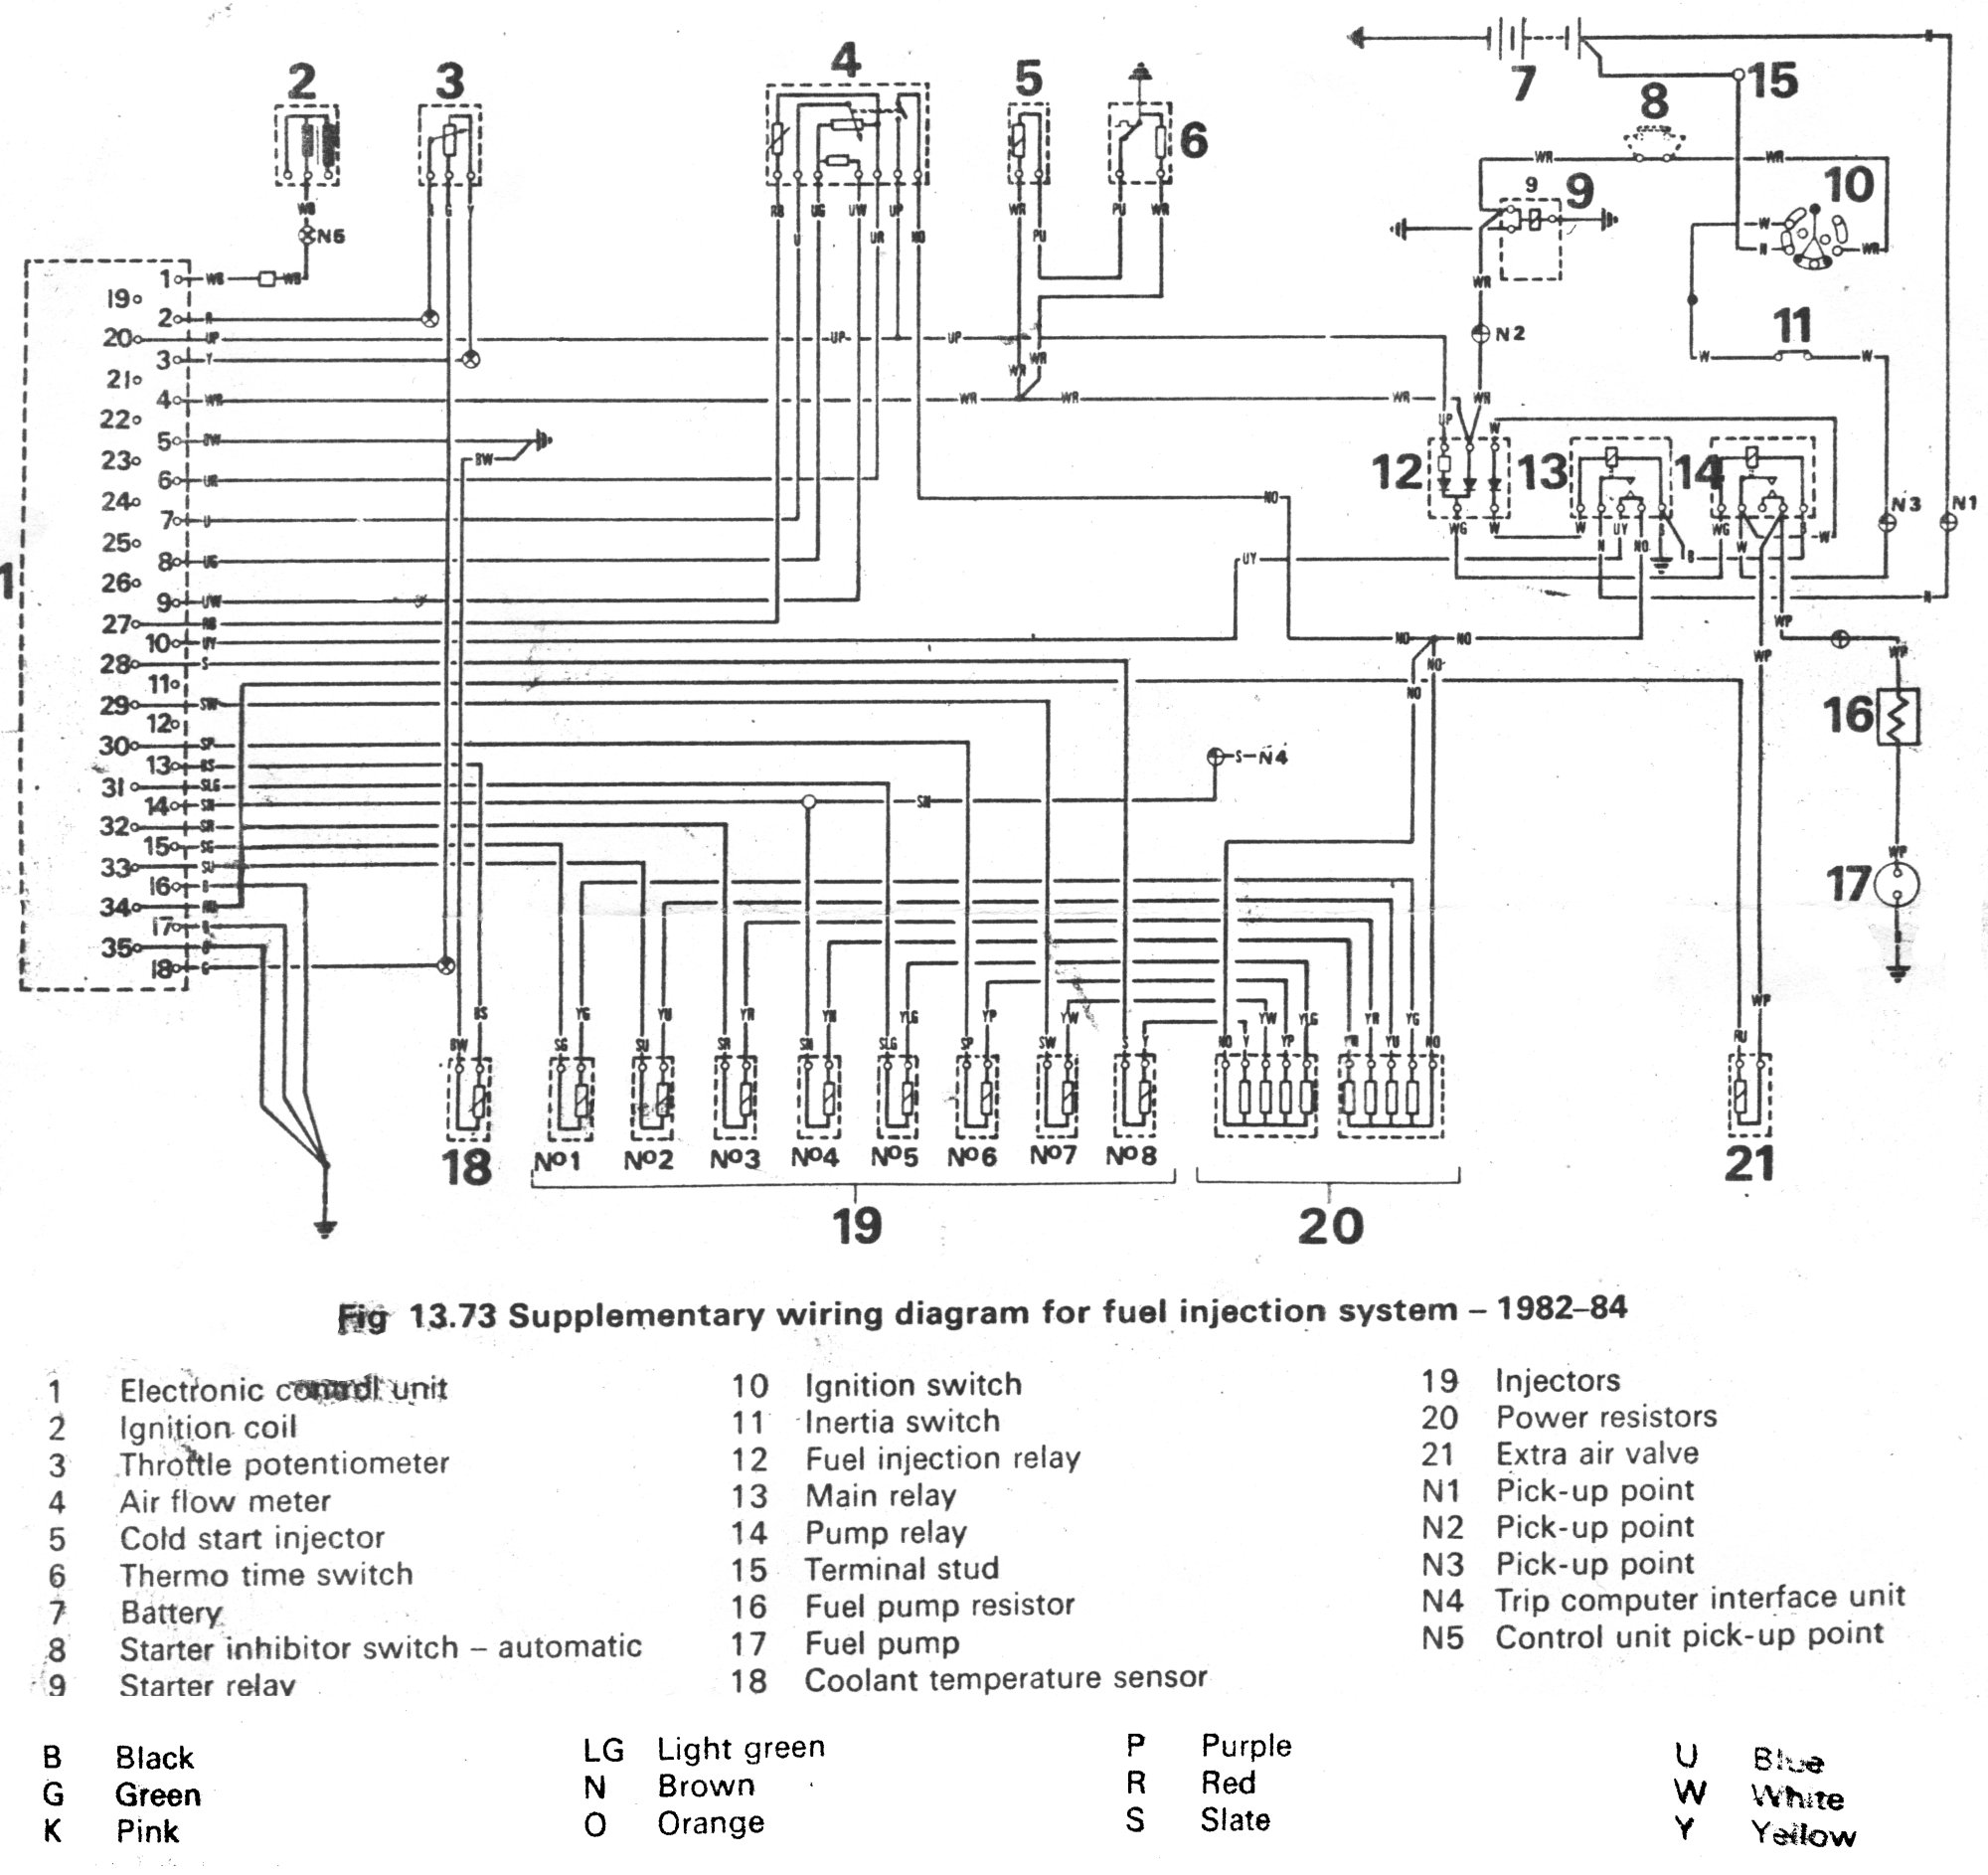 Land Rover Ac Wiring Diagram - 14.frv.capecoral-bootsvermietung.de on land rover schematics, land rover rear axle, land rover service manuals, range rover wiring diagrams, land rover engine, land rover dimensions, land rover troubleshooting, land rover discovery, land rover all models, land rover water pump replacement, land rover paint codes, land rover braking system, land rover radio wiring, land rover exhaust, land rover torque specs, land rover brakes, land rover timing marks, land rover fuel system, land rover tools, land rover belt routing,